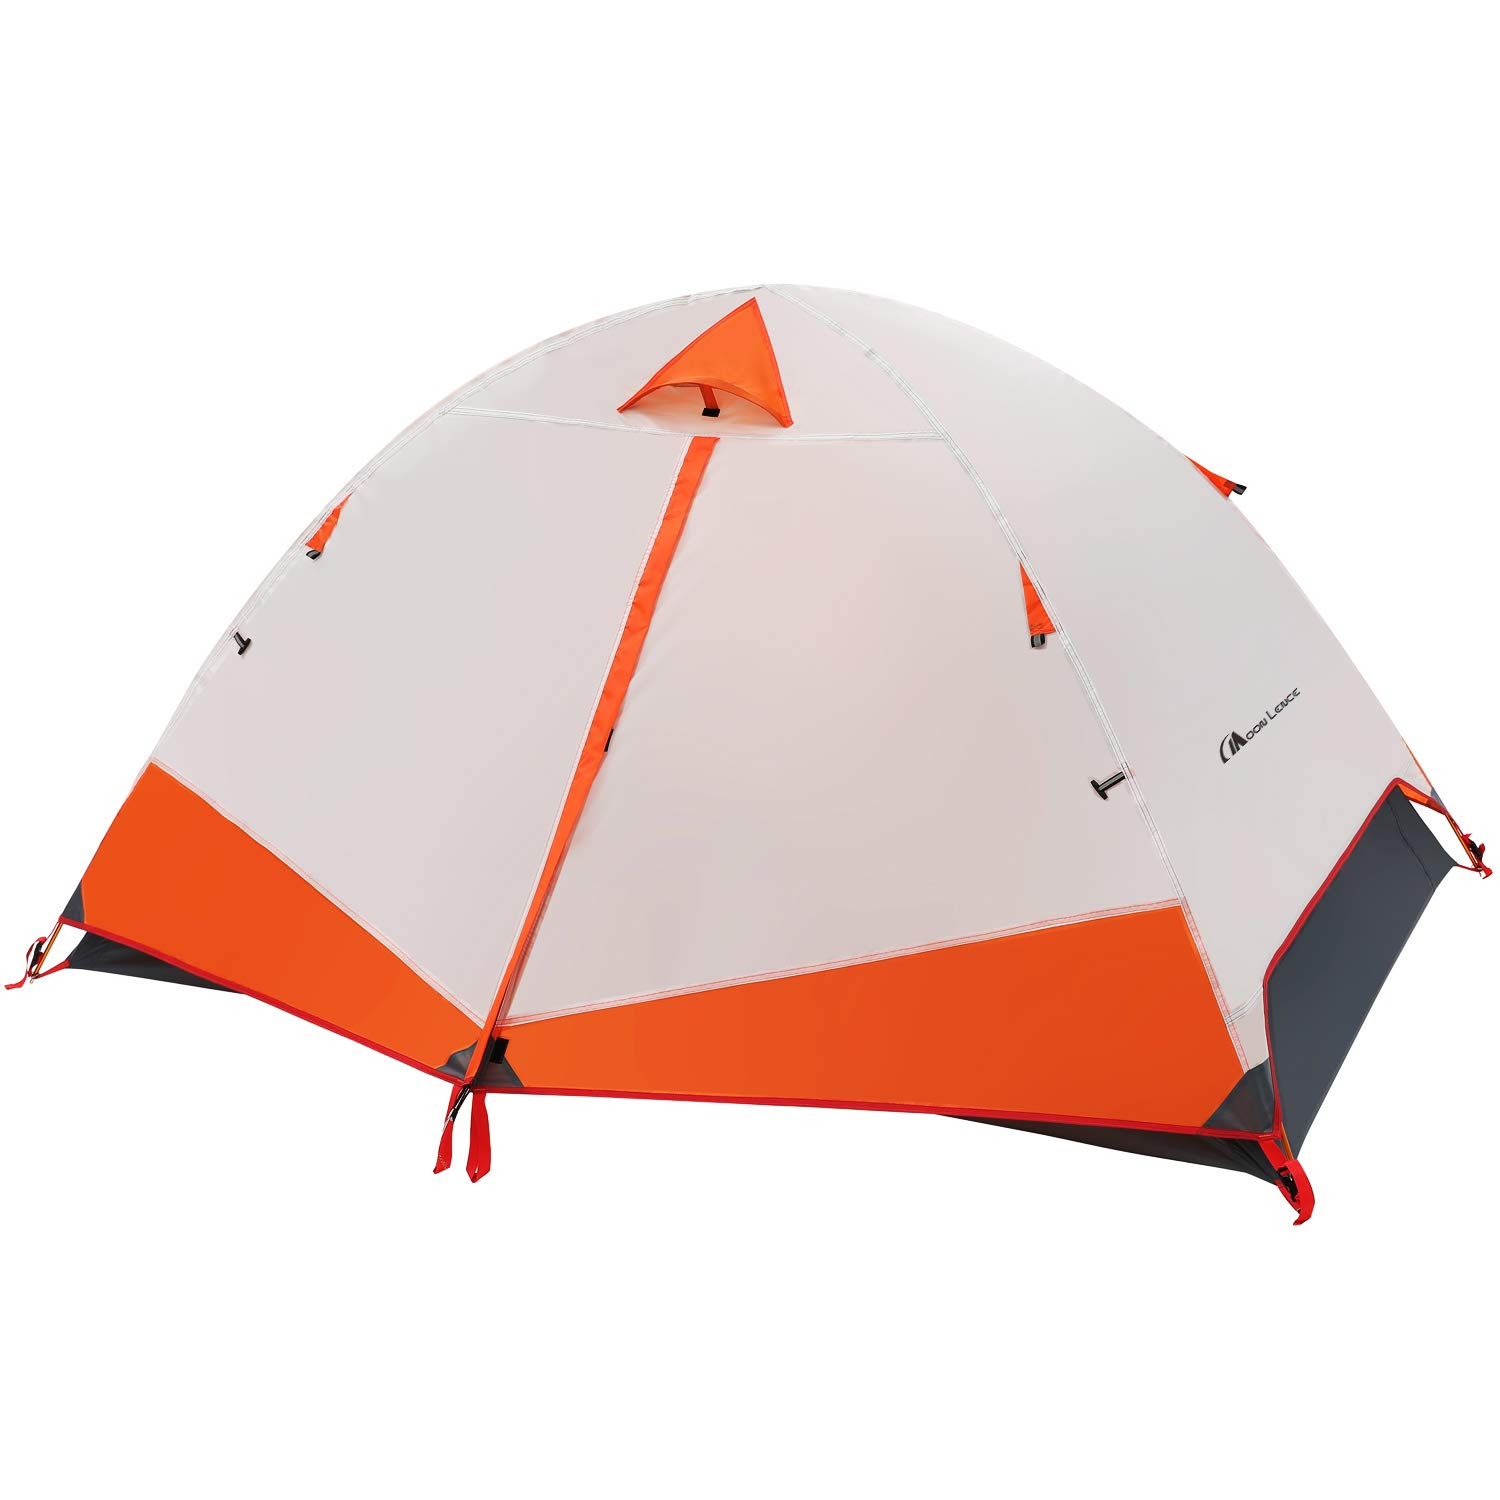 MOON LENCE Camping Tent 2 Person Family Tent Double Layer Outdoor Tent Waterproof Wind Proof Anti-UV by MOON LENCE